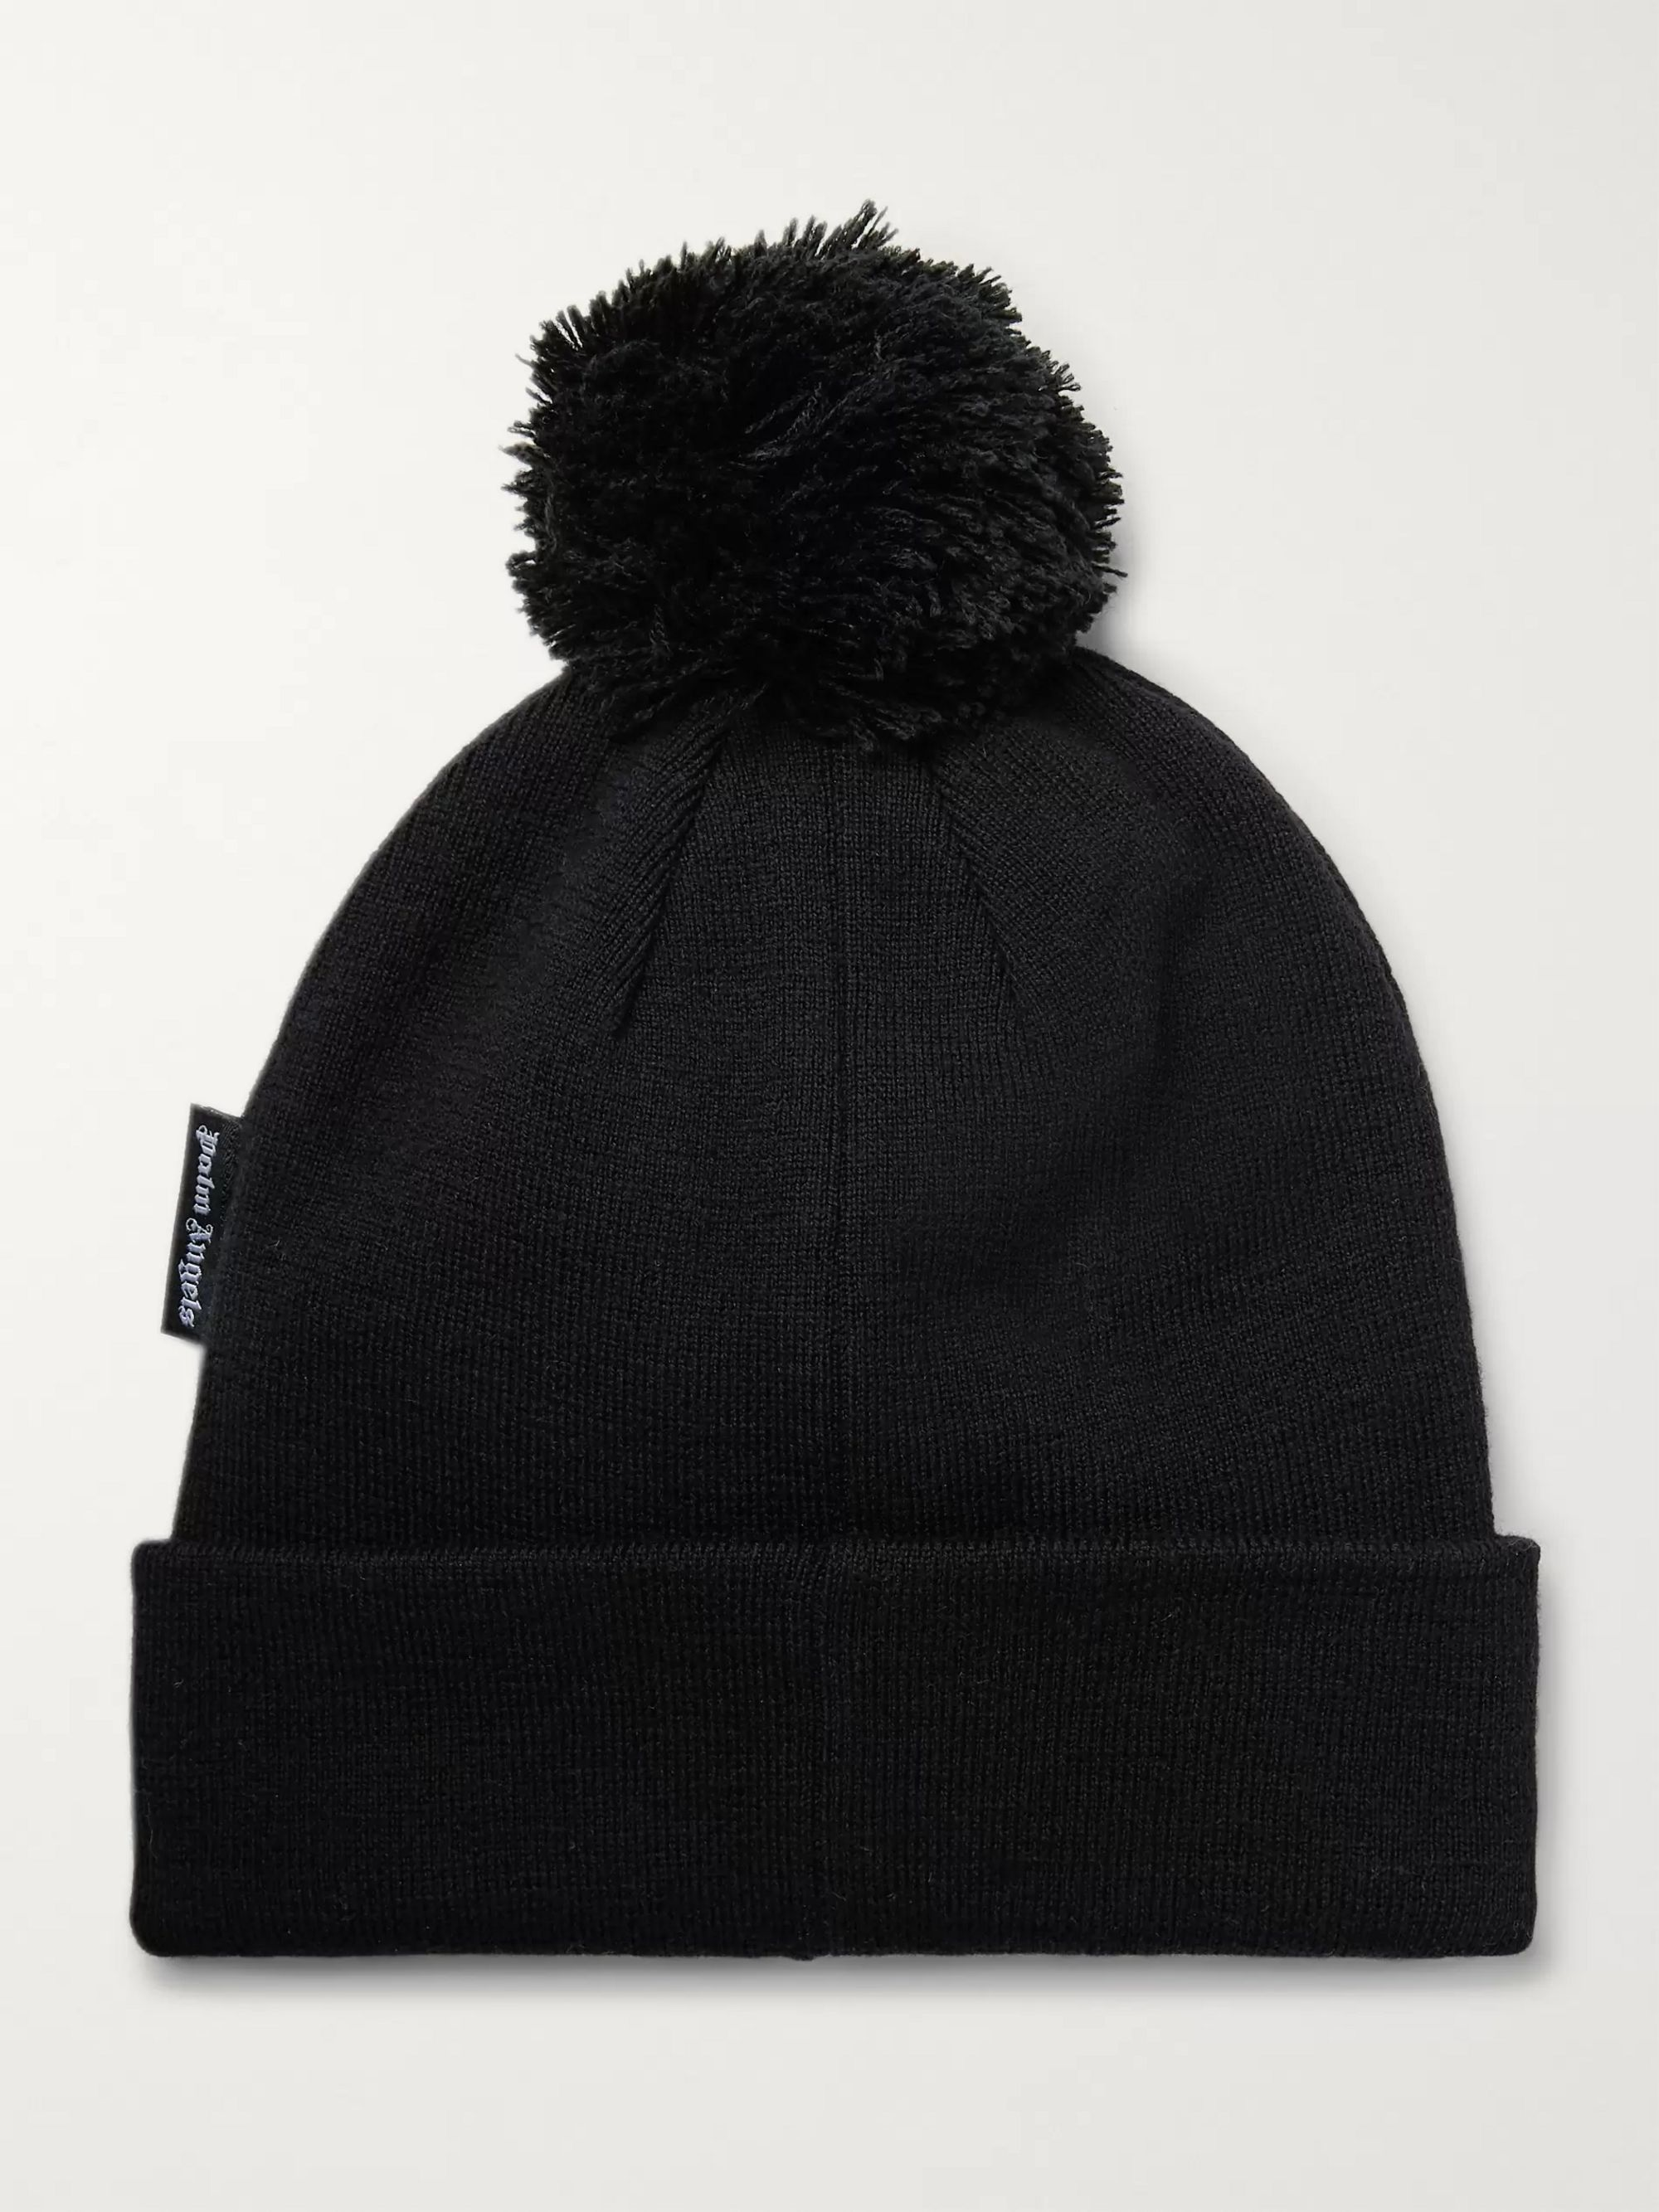 PALM ANGELS Appliquéd Wool Beanie